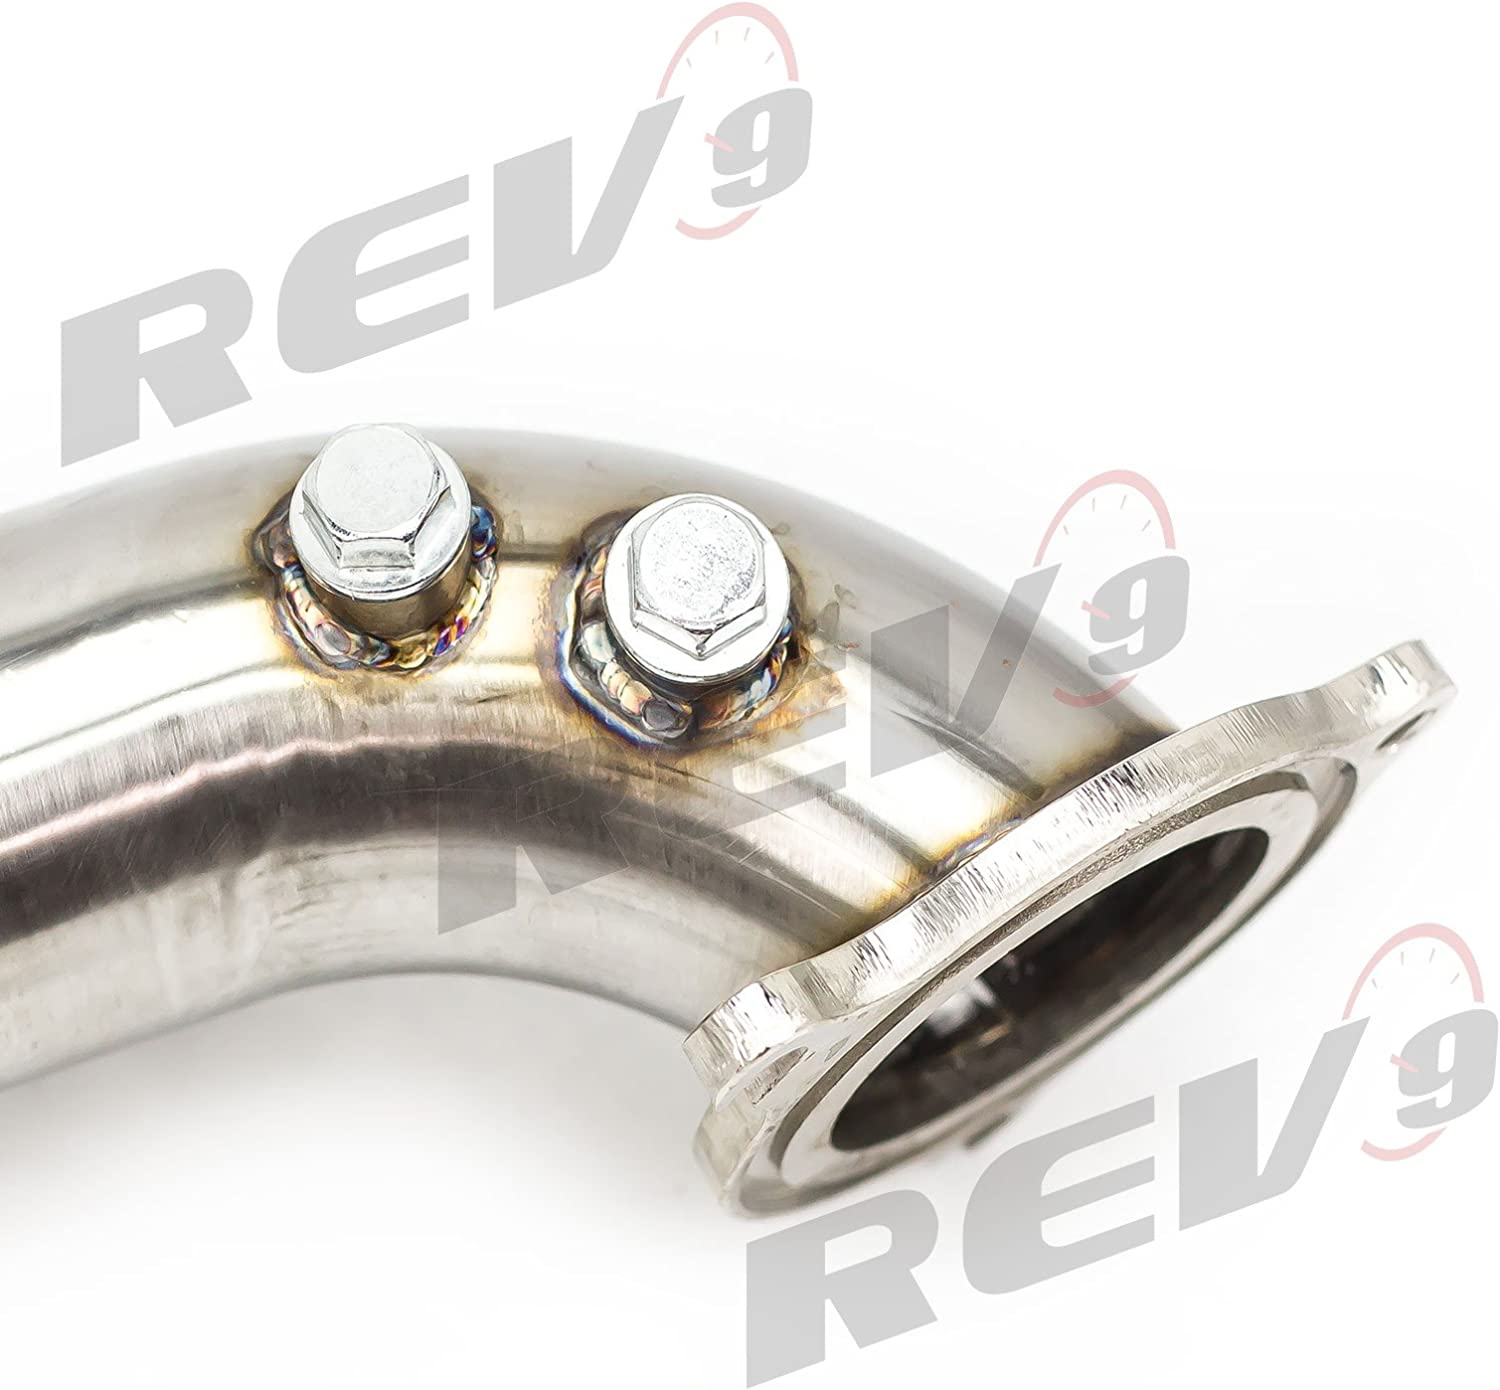 Rev9 3 Downpipe for 2014-2017 Ford Fiesta ST 1.6L Ecoboost Catless Flex Turbo Down pipe Stainless Steel